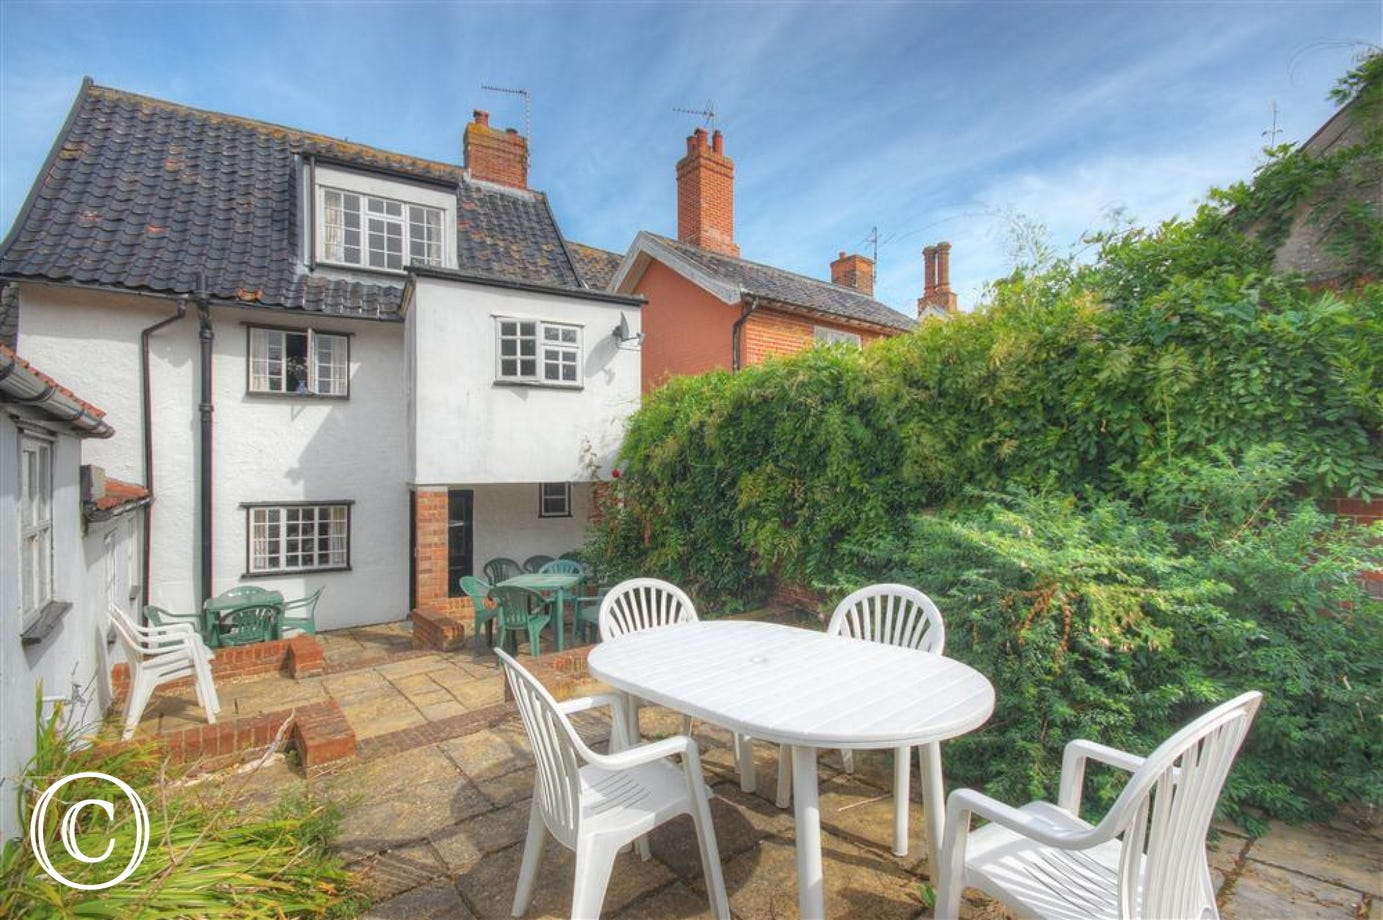 Enjoy the outside space this property has to offer and make use of the white garden furniture.